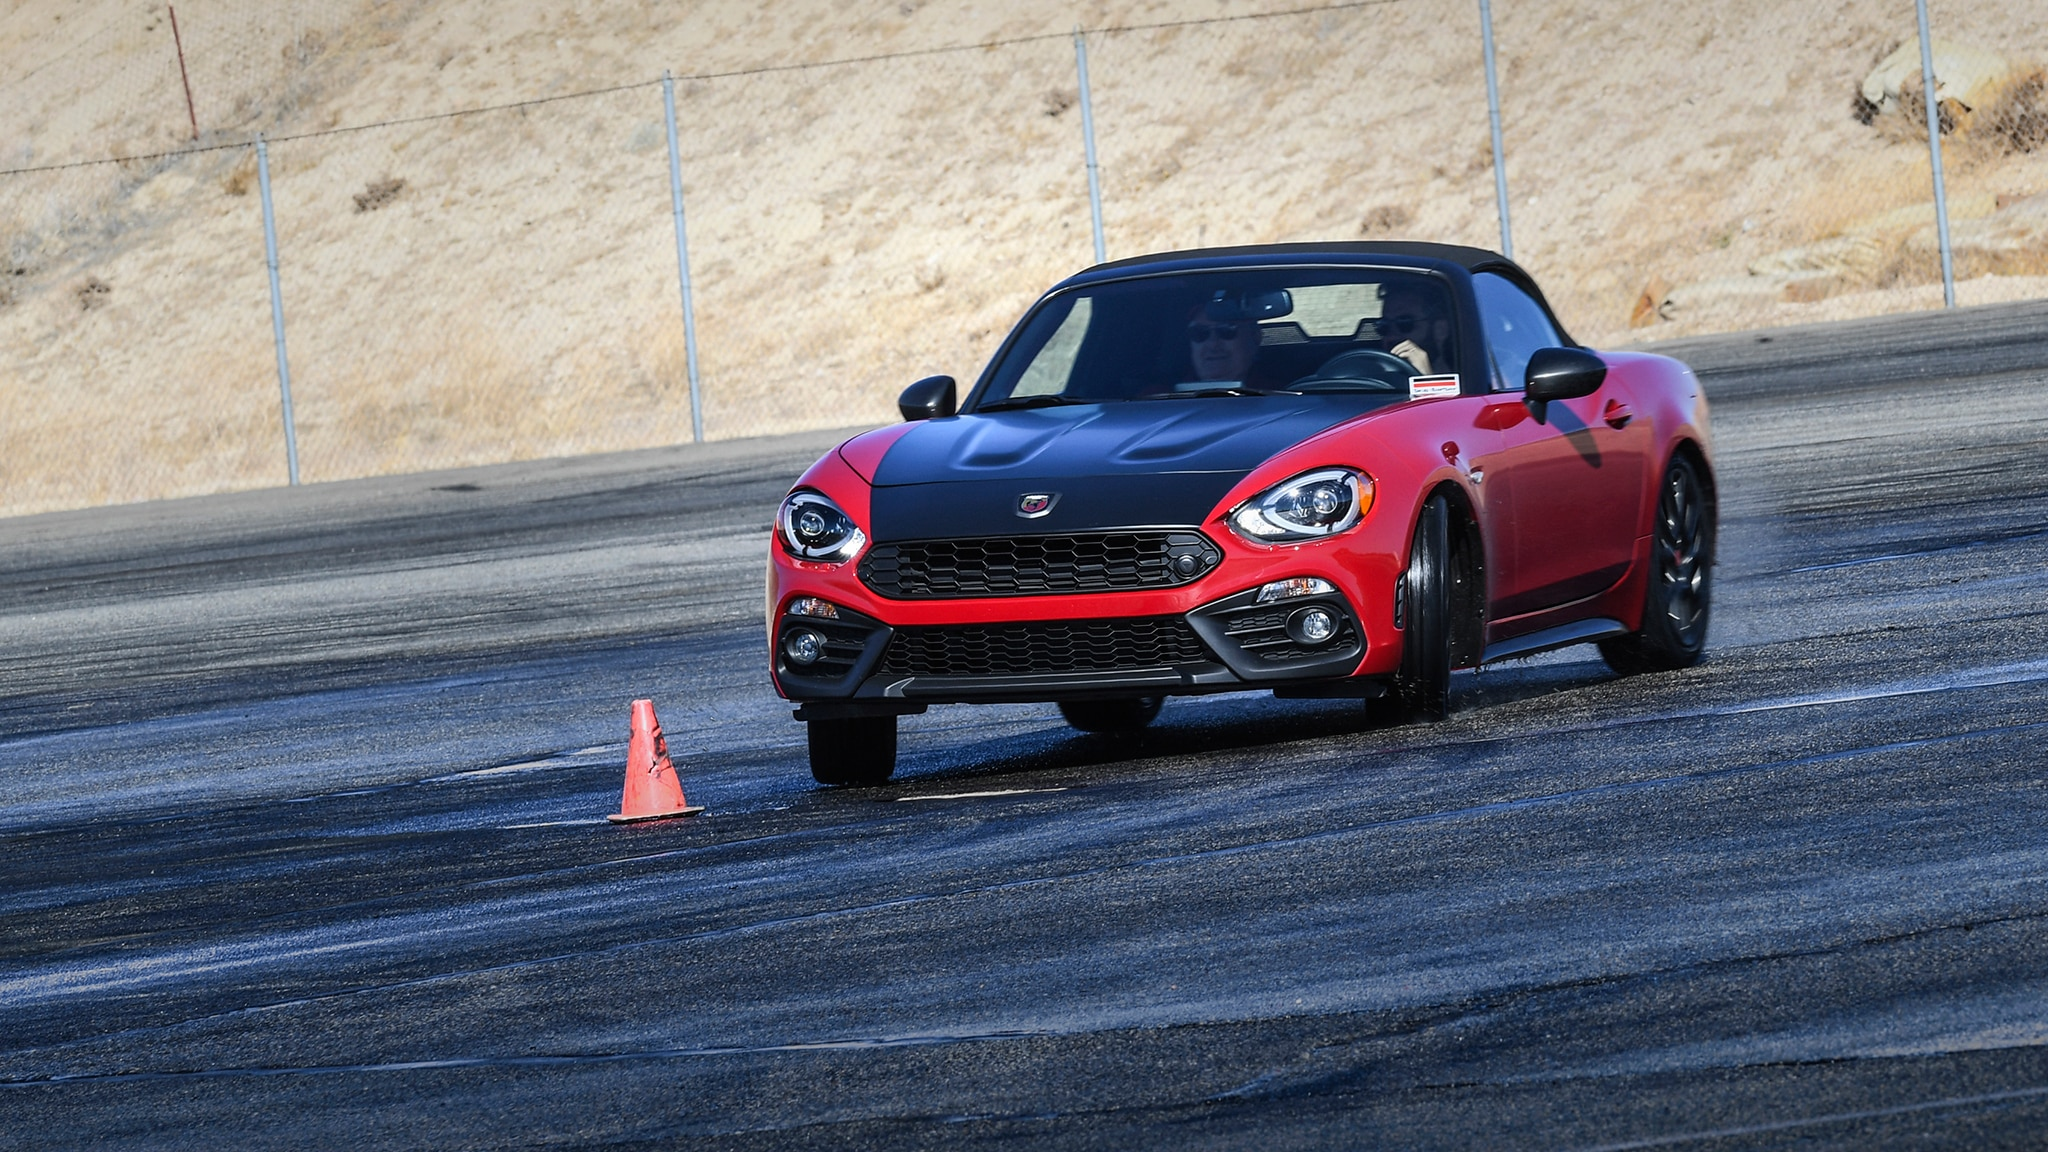 The Fiat Abarth Track Experience